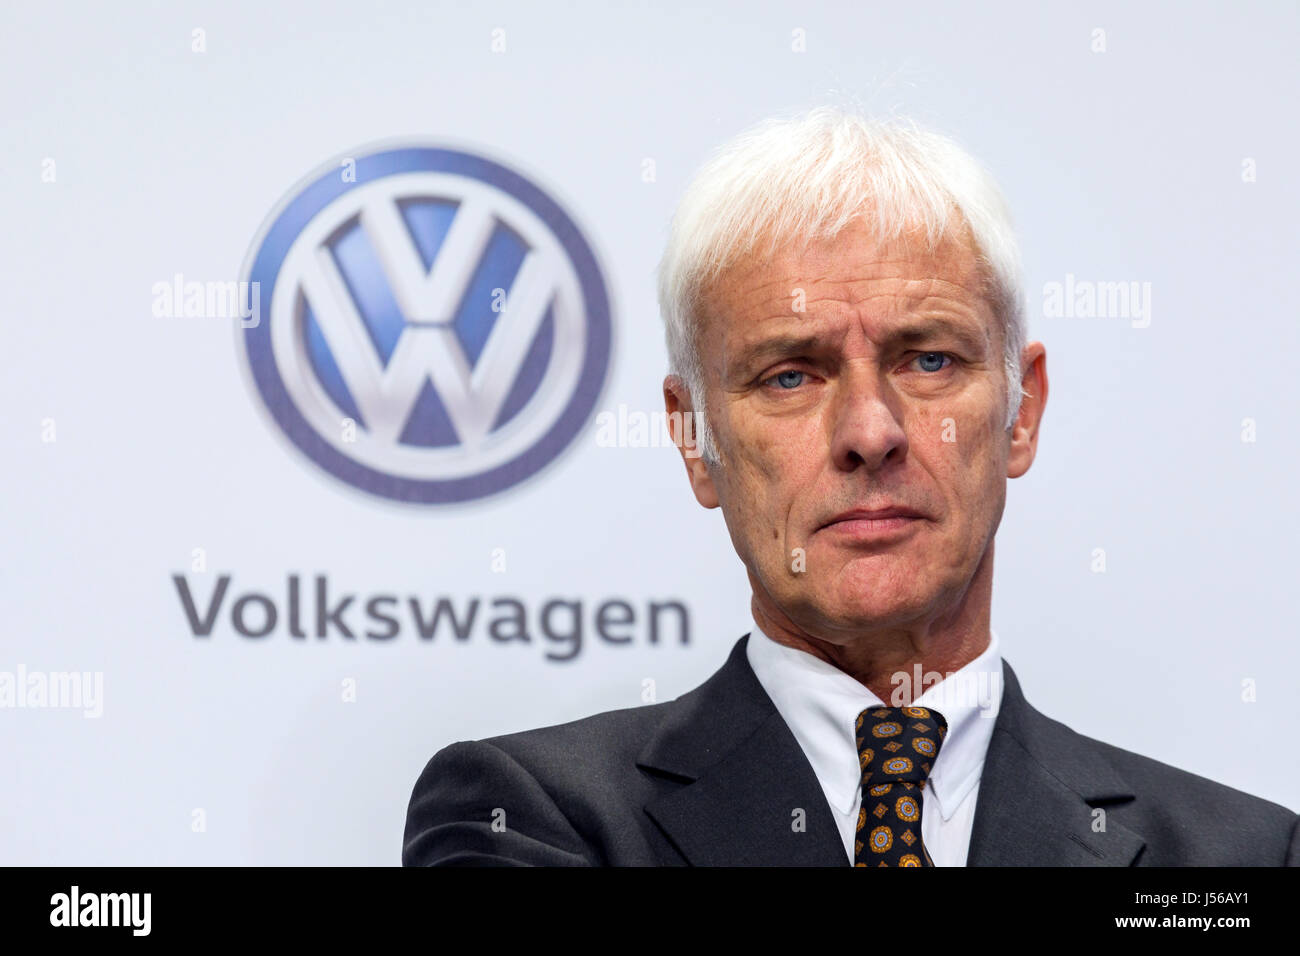 Wolfsburg, Germany. 18th Nov, 2016. ARCHIVE - Matthias Mueller, the CEO of Volkswagen AG, at a press conference - Stock Image